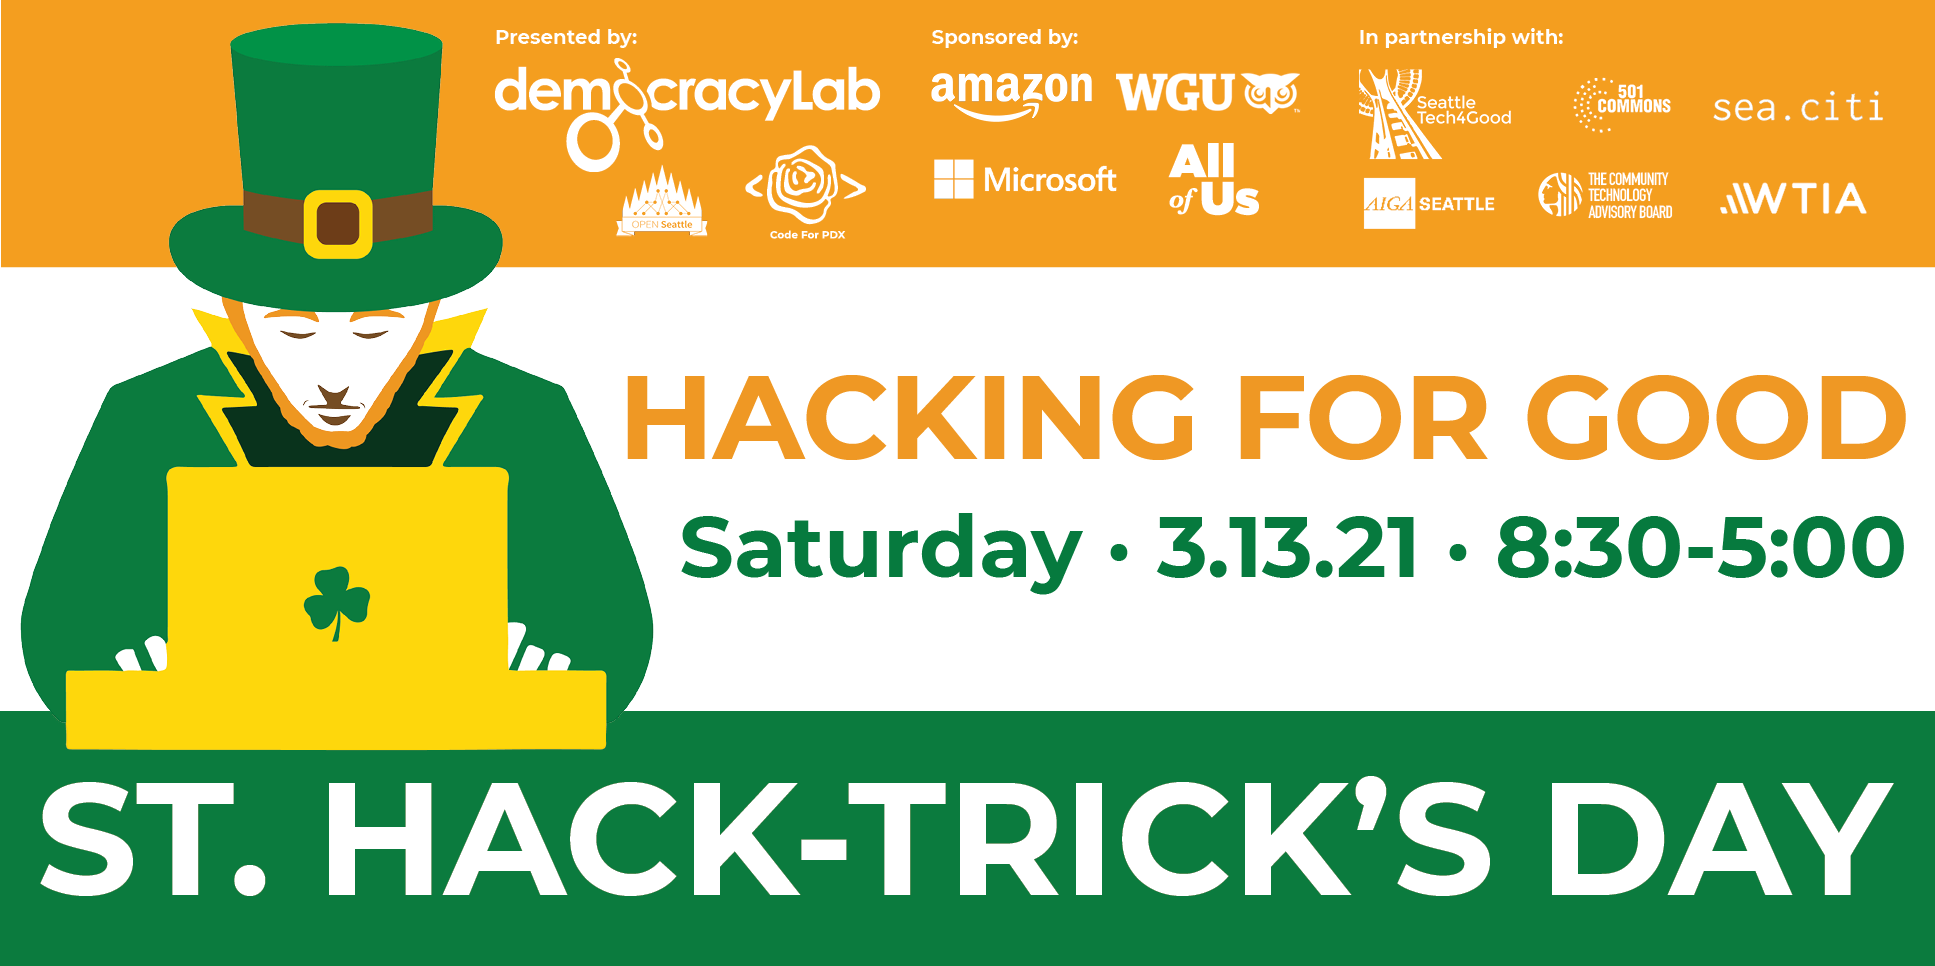 2nd Virtual St. Hack-trick's Day Accelerates Civic Innovation